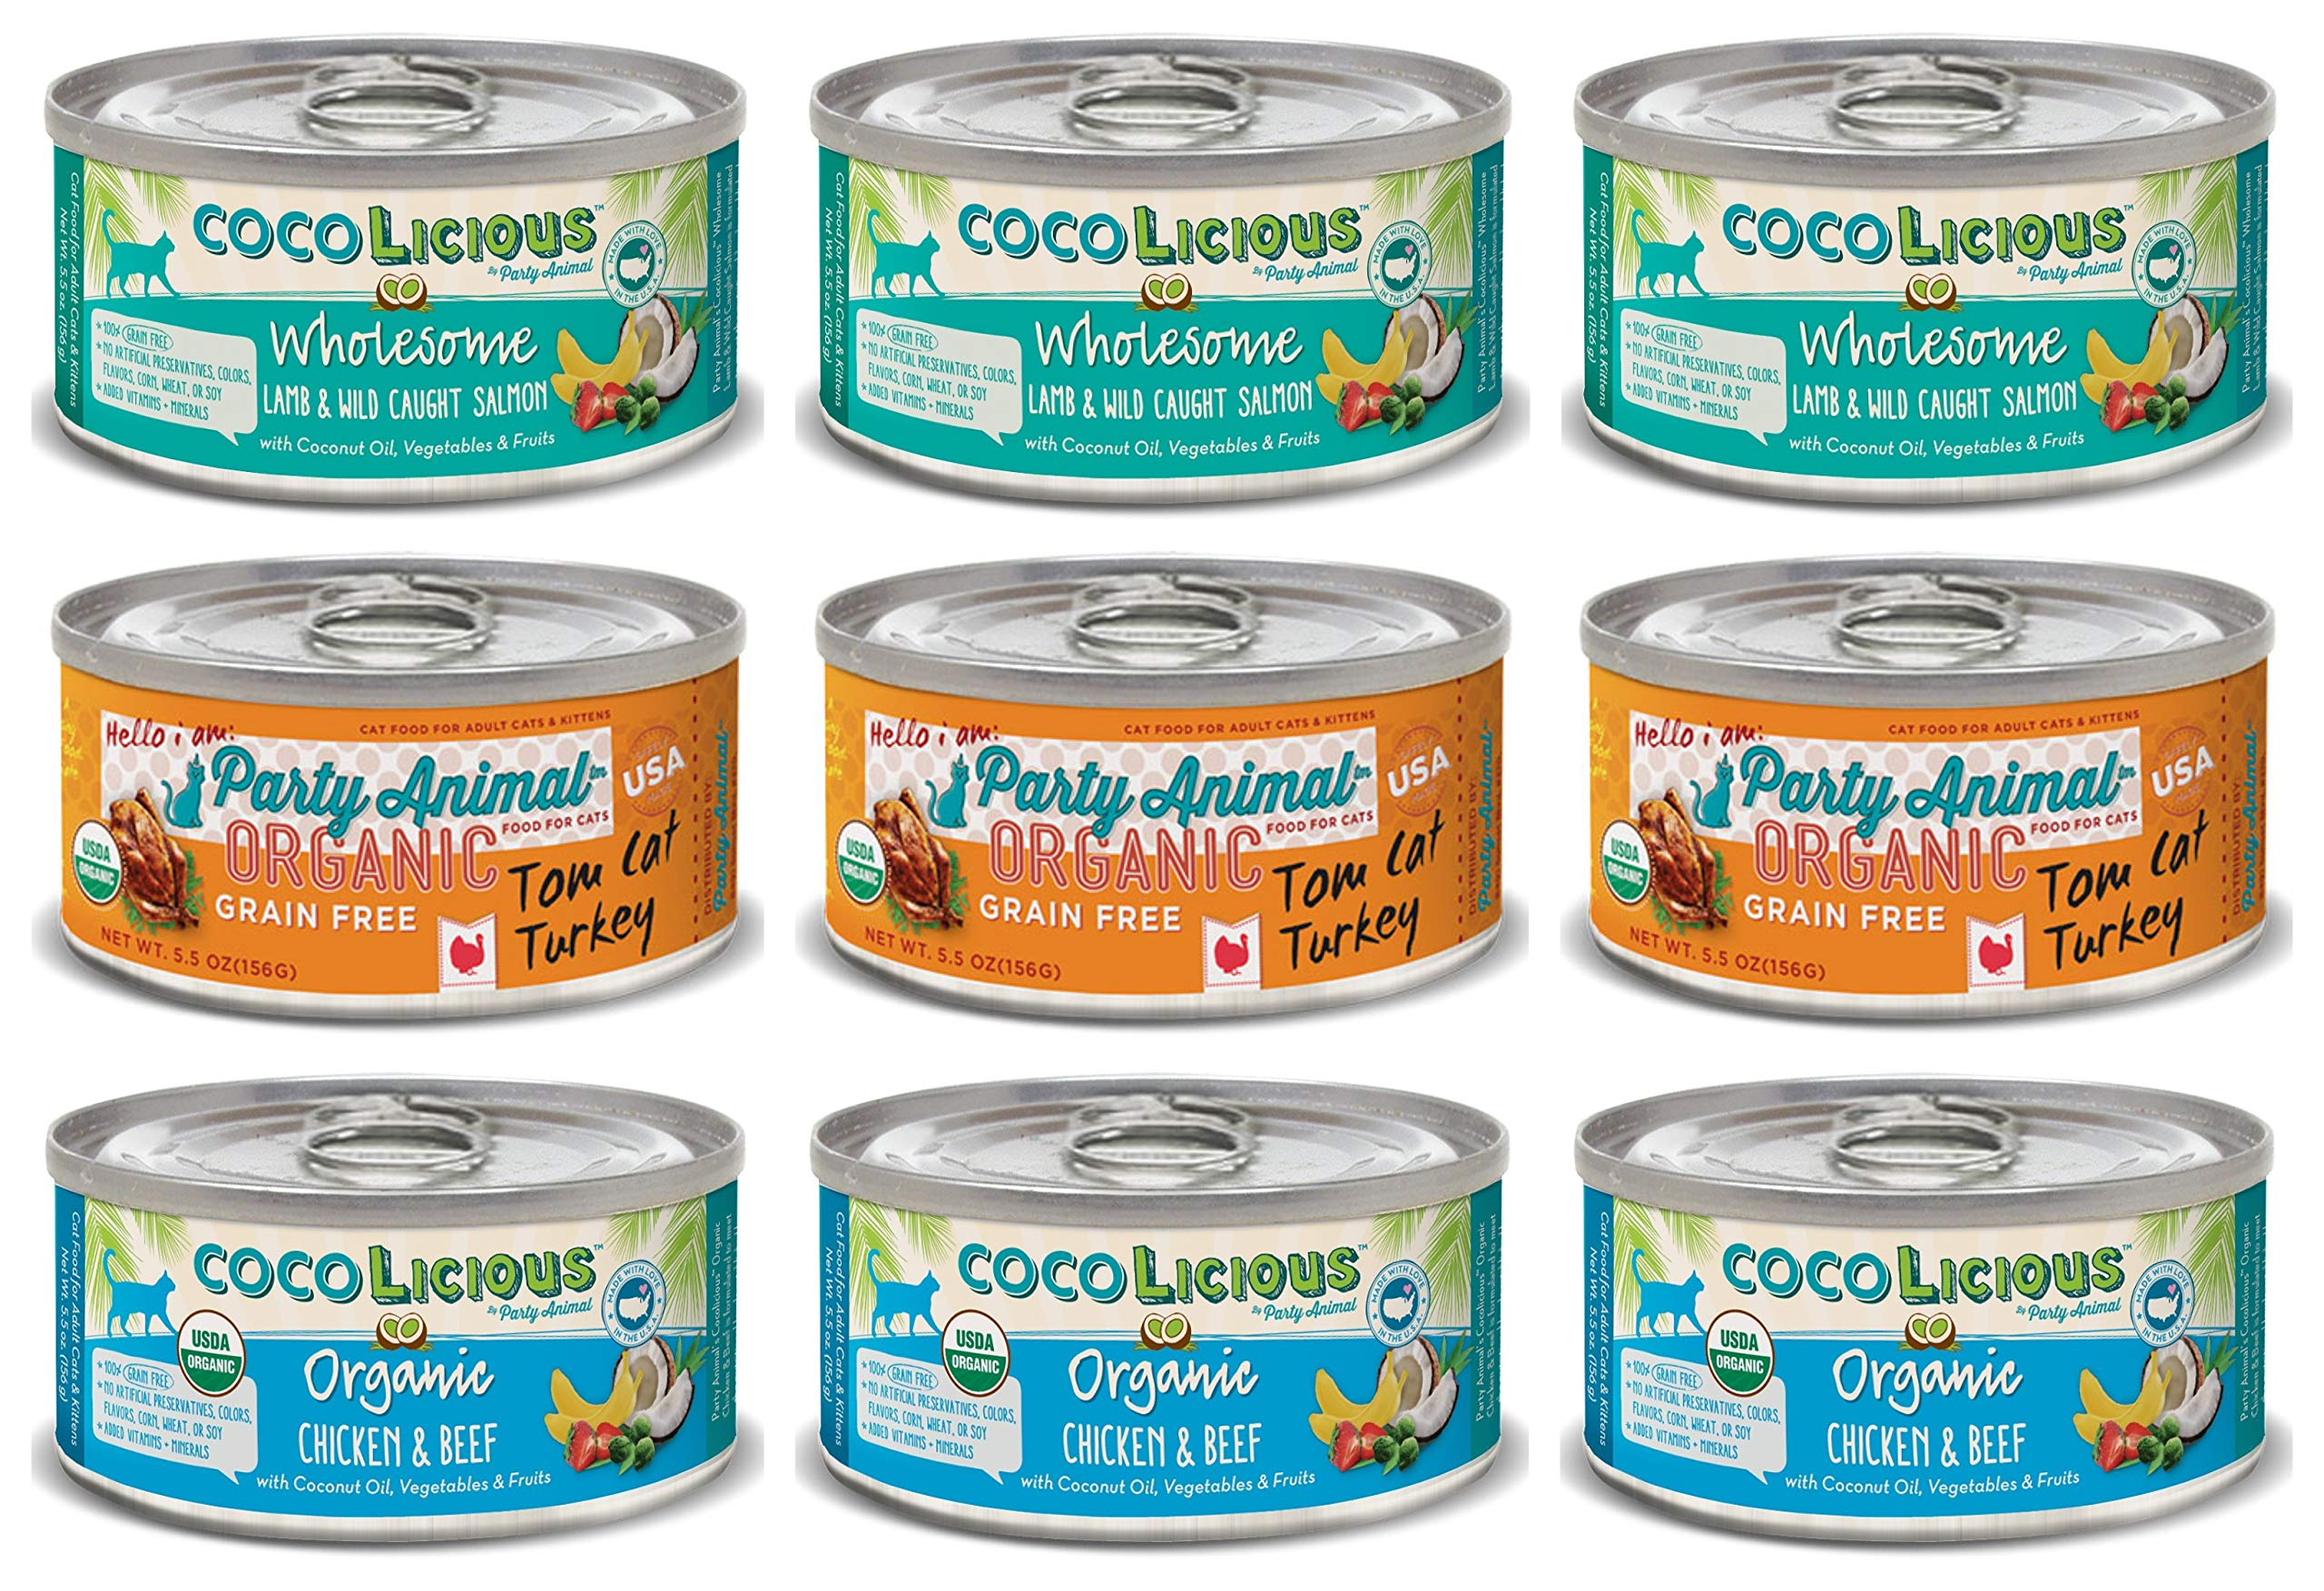 Party Animal Grain Free Cat Food Pate in 3 Flavors: (3) Organic Chicken & Beef, (3) Lamb & Wild Caught Salmon, and (3) Organic Tom Cat Turkey (9 Cans Total, 5.5 Ounces Each)